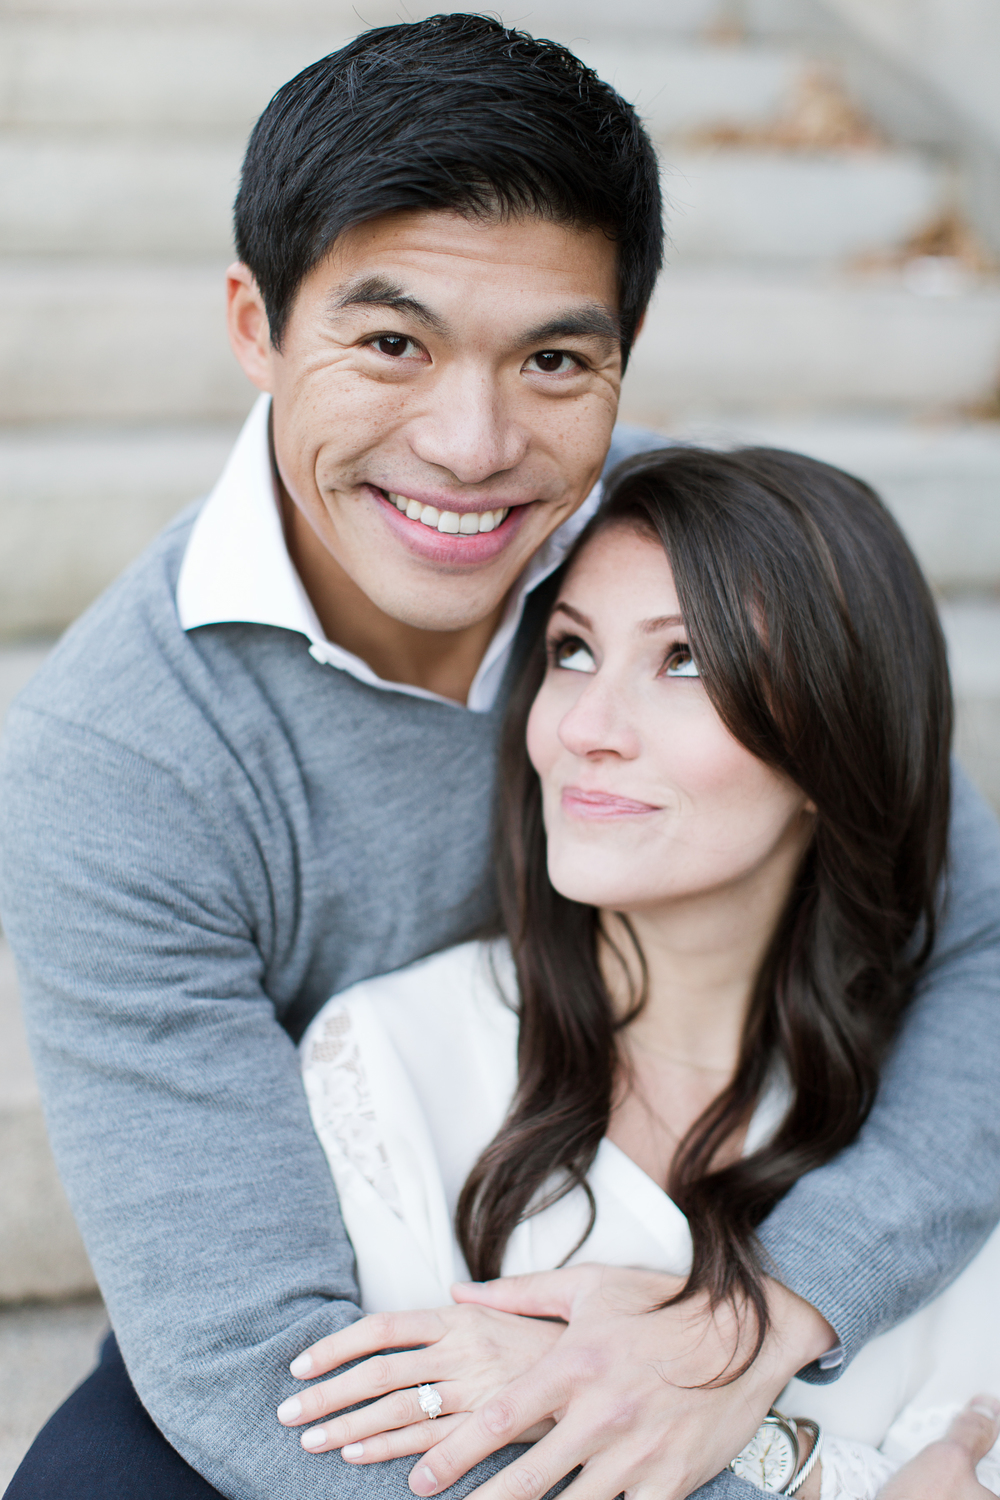 Melissa Kruse Photography - Emily + Kevin Engagement Session-203.jpg